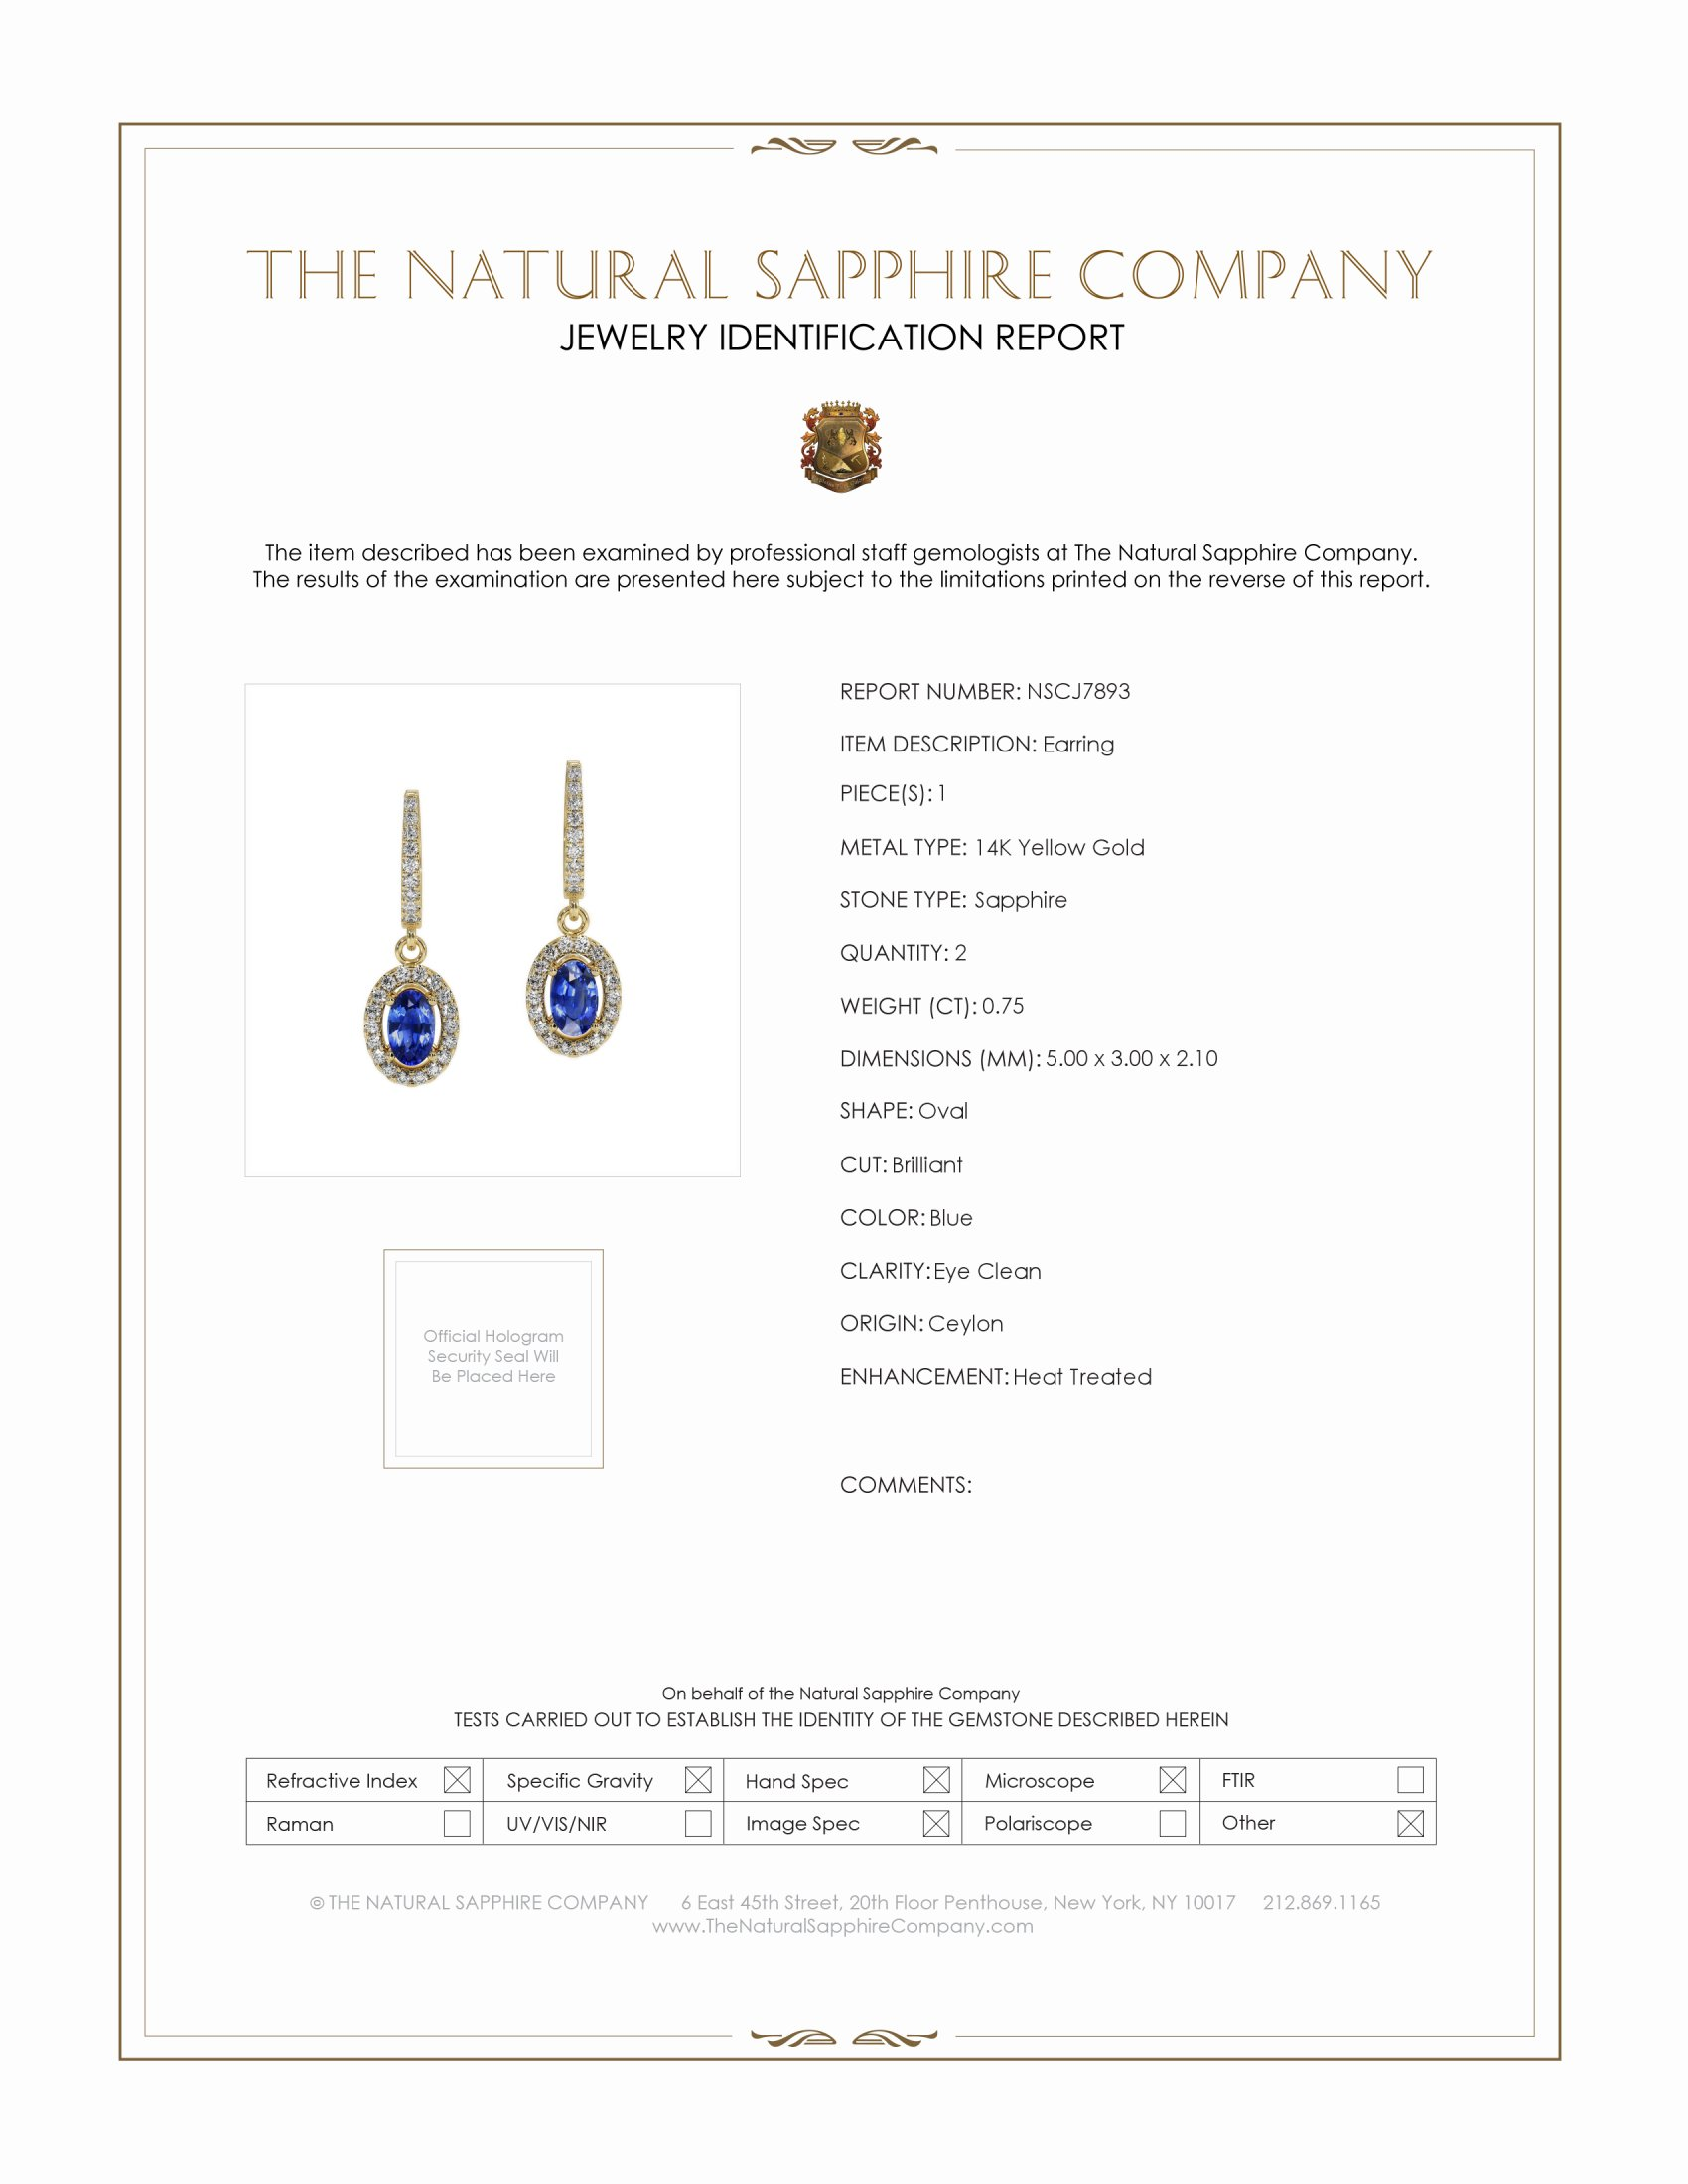 0.75ct Blue Sapphire Earring Certification